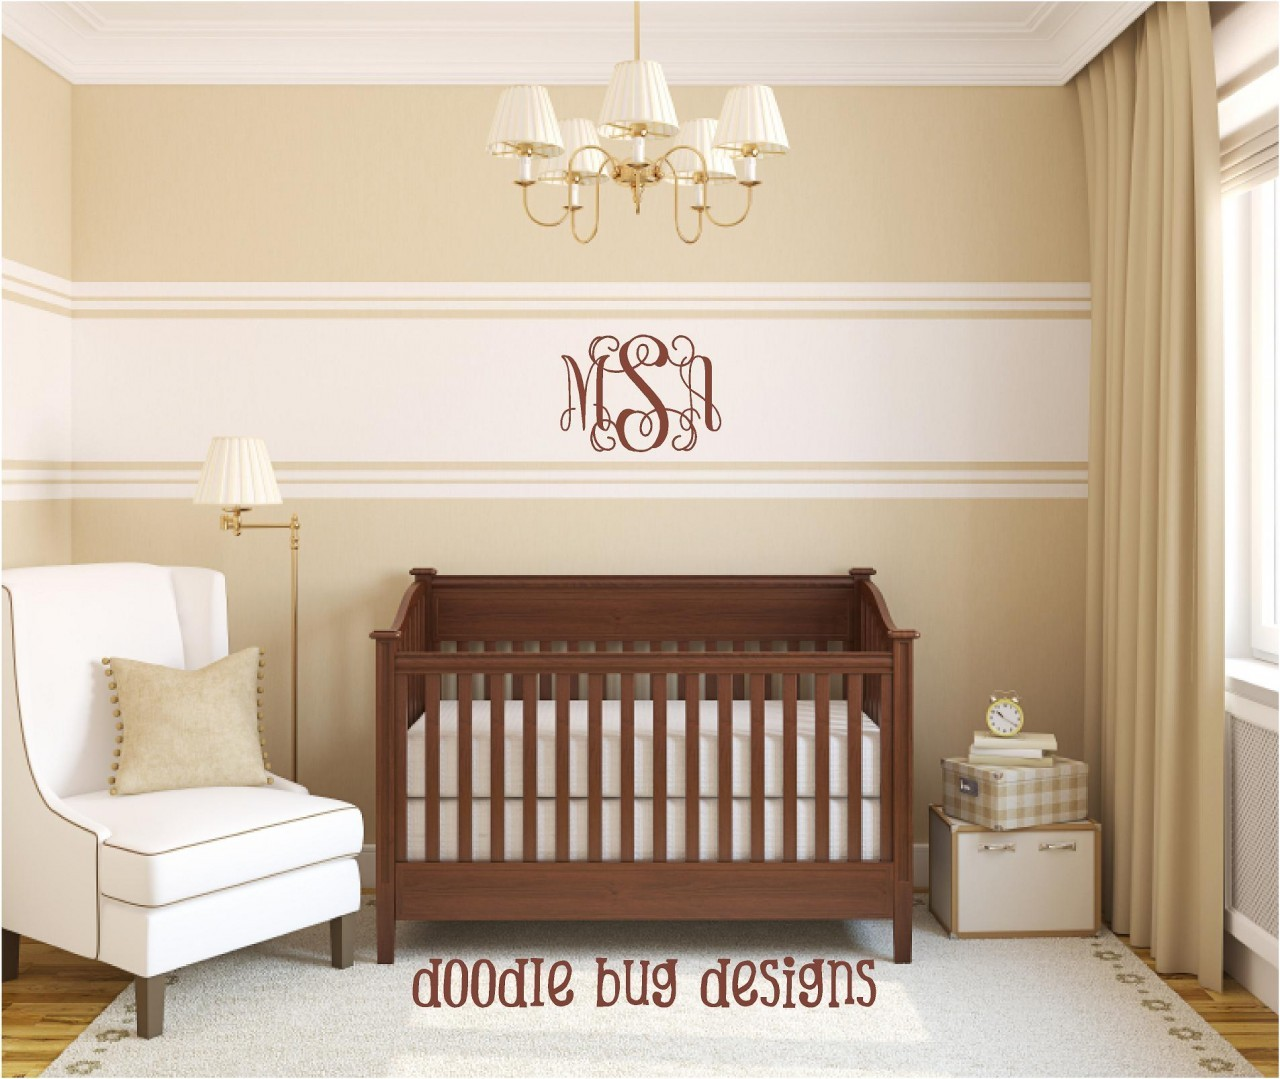 Nursery Decor Ideas 2017 Grasscloth Wallpaper